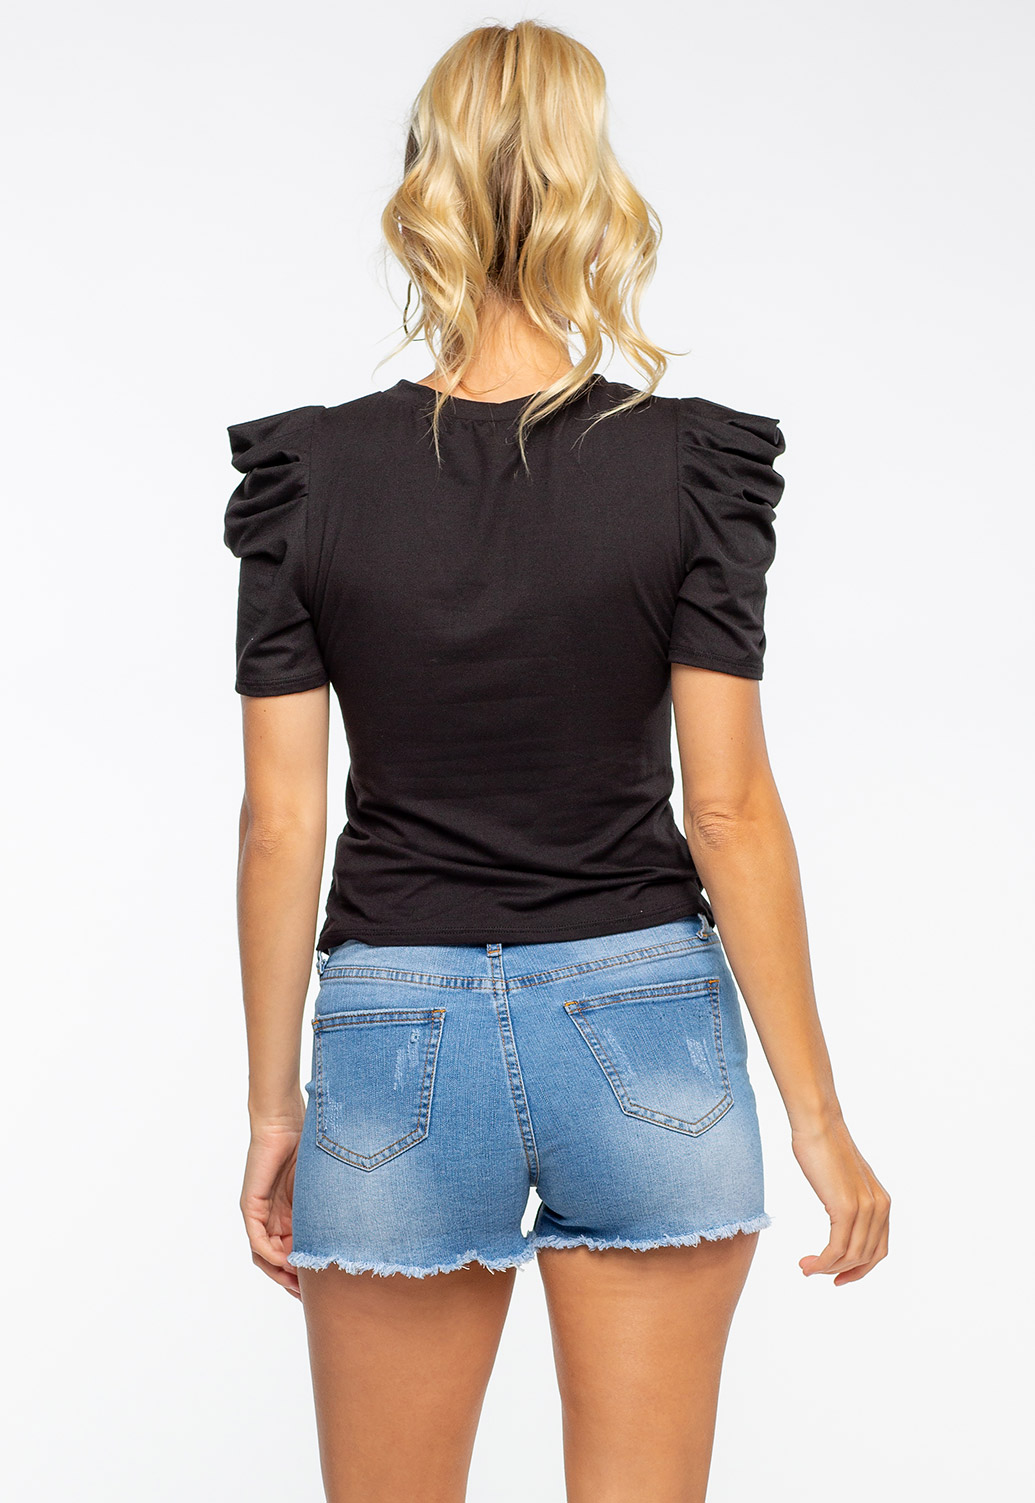 Ruched Puff Shoulder Black Mesh Top With Print